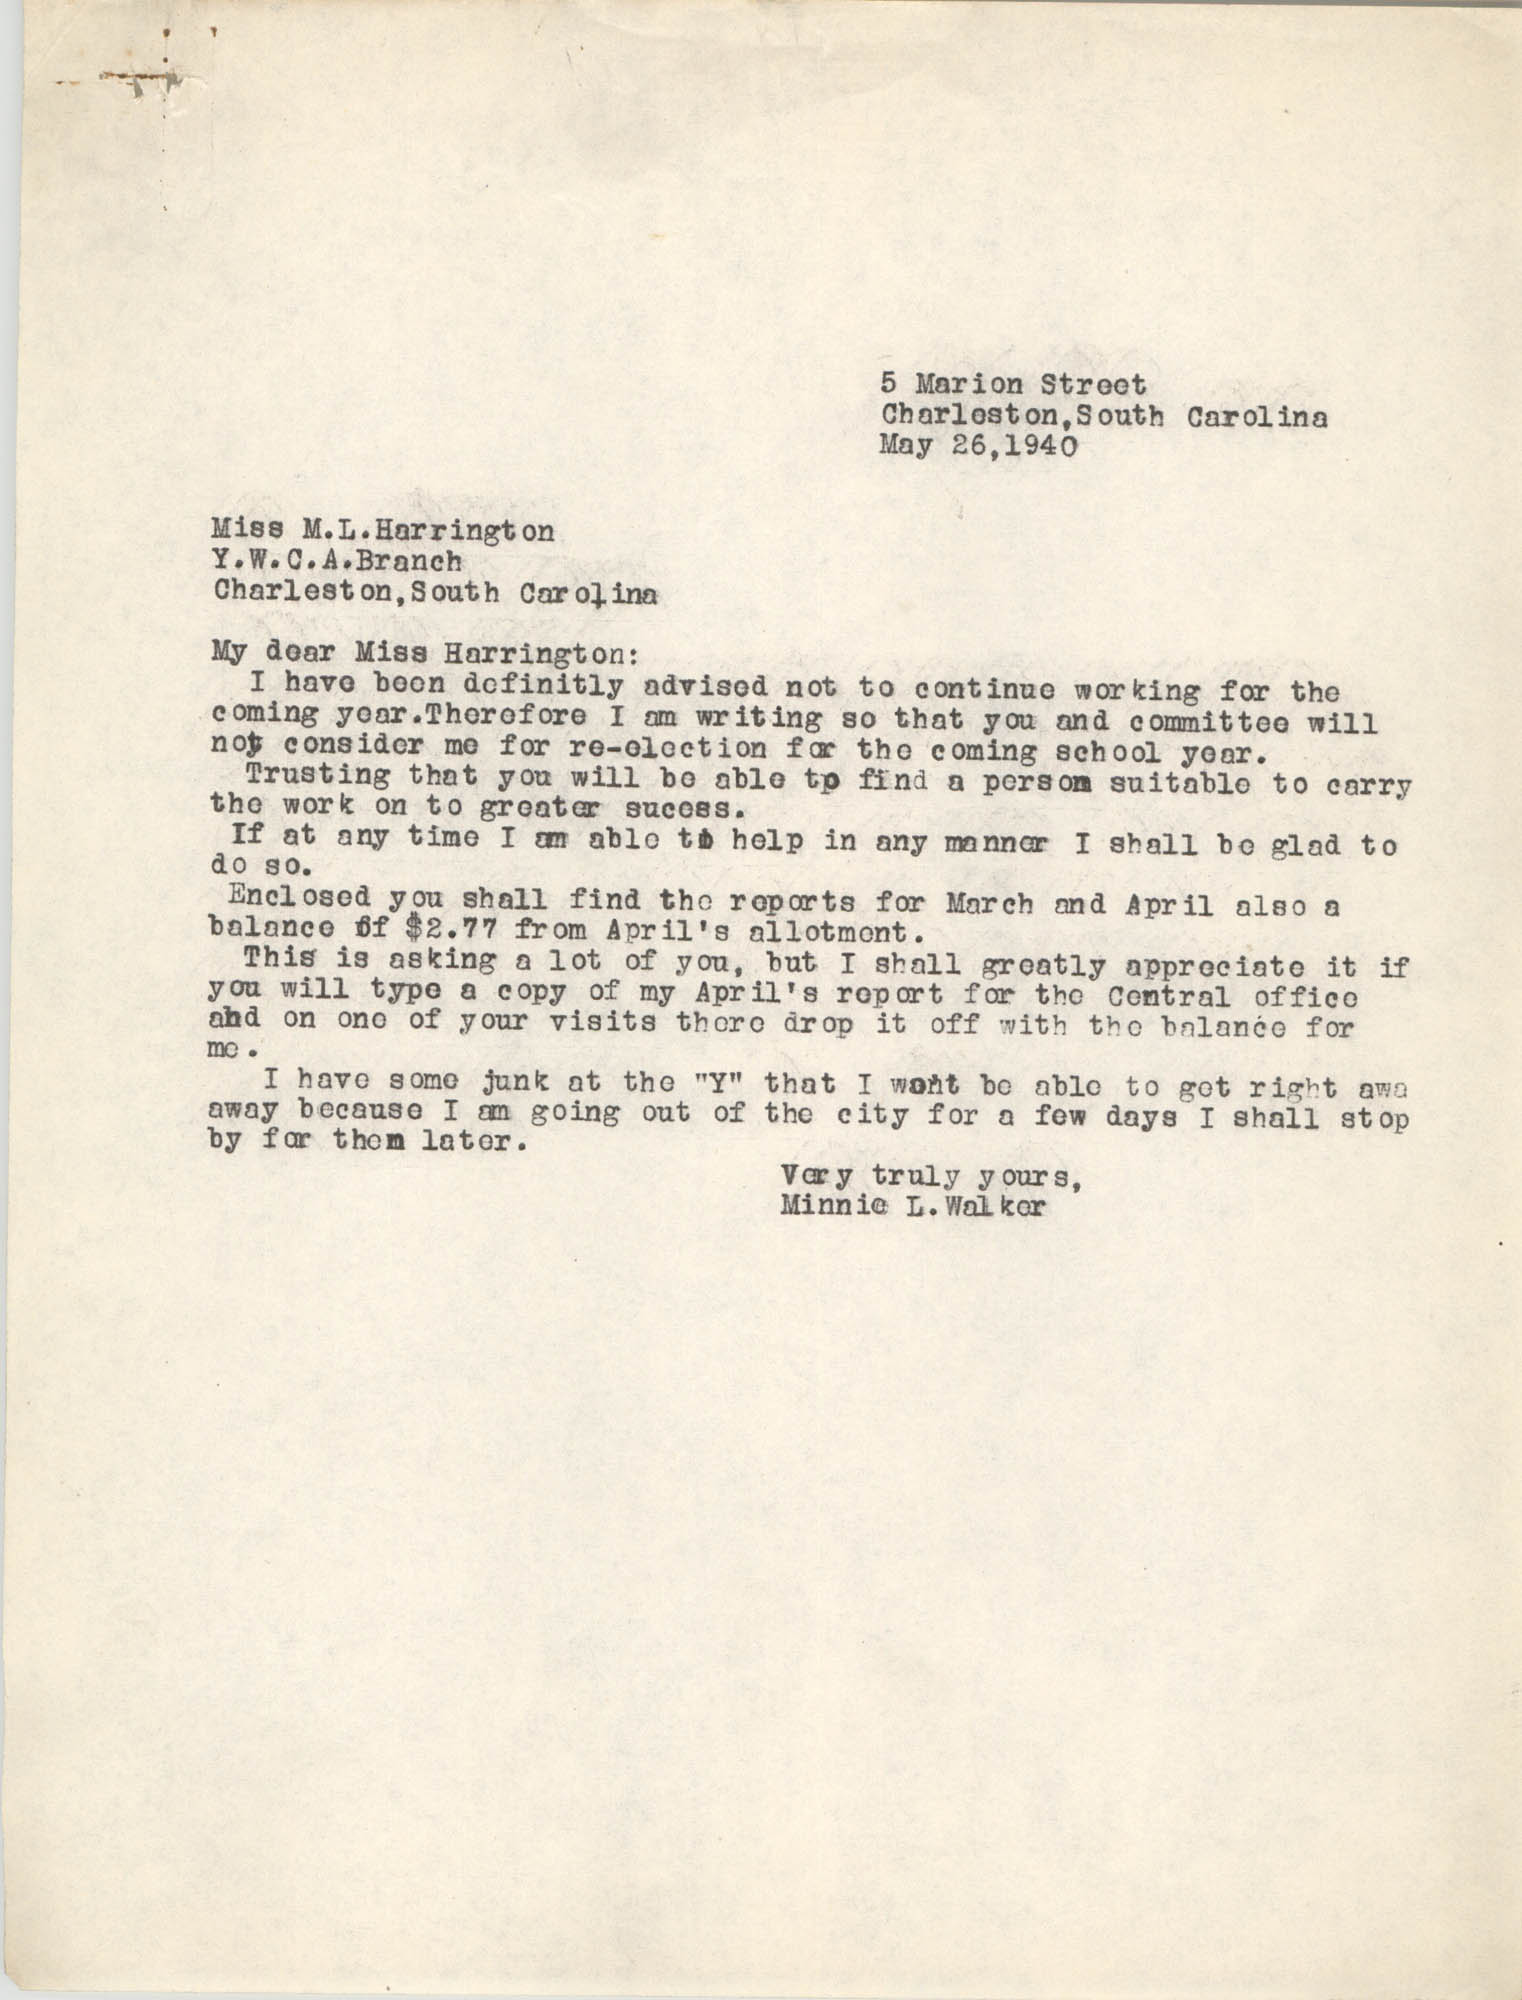 Letter from Minnie L. Walker to M. L. Harrington, May 26, 1940